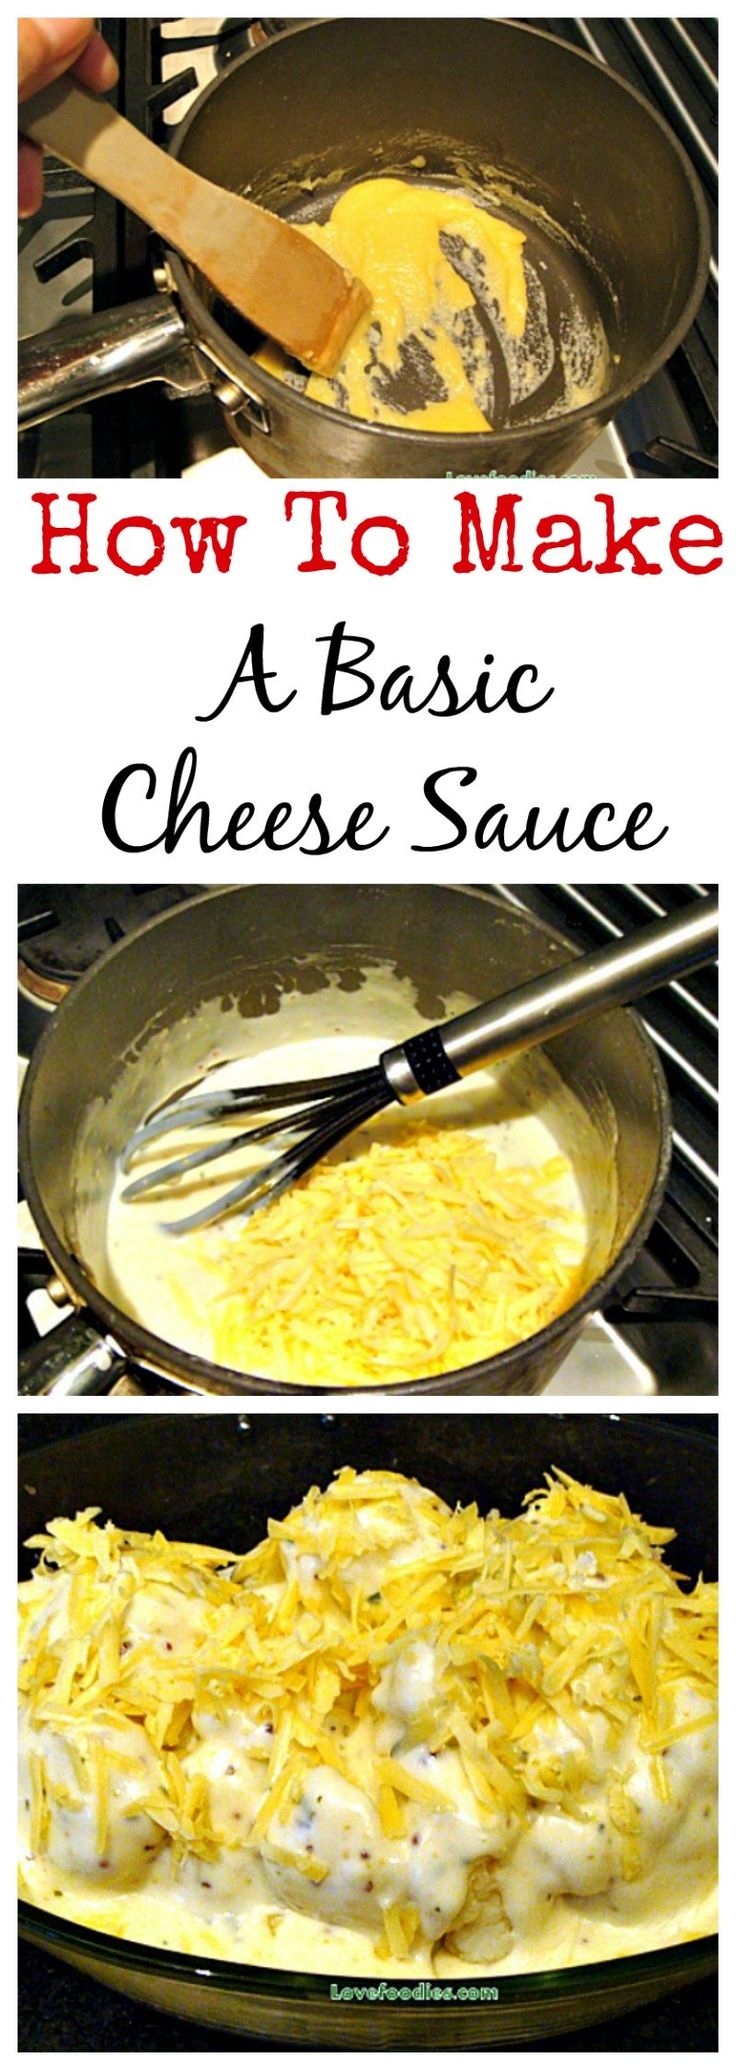 How To Make A Basic Cheese Sauce - with NO lumps!! Come and try it, and surprise yourself! : lovefoodies